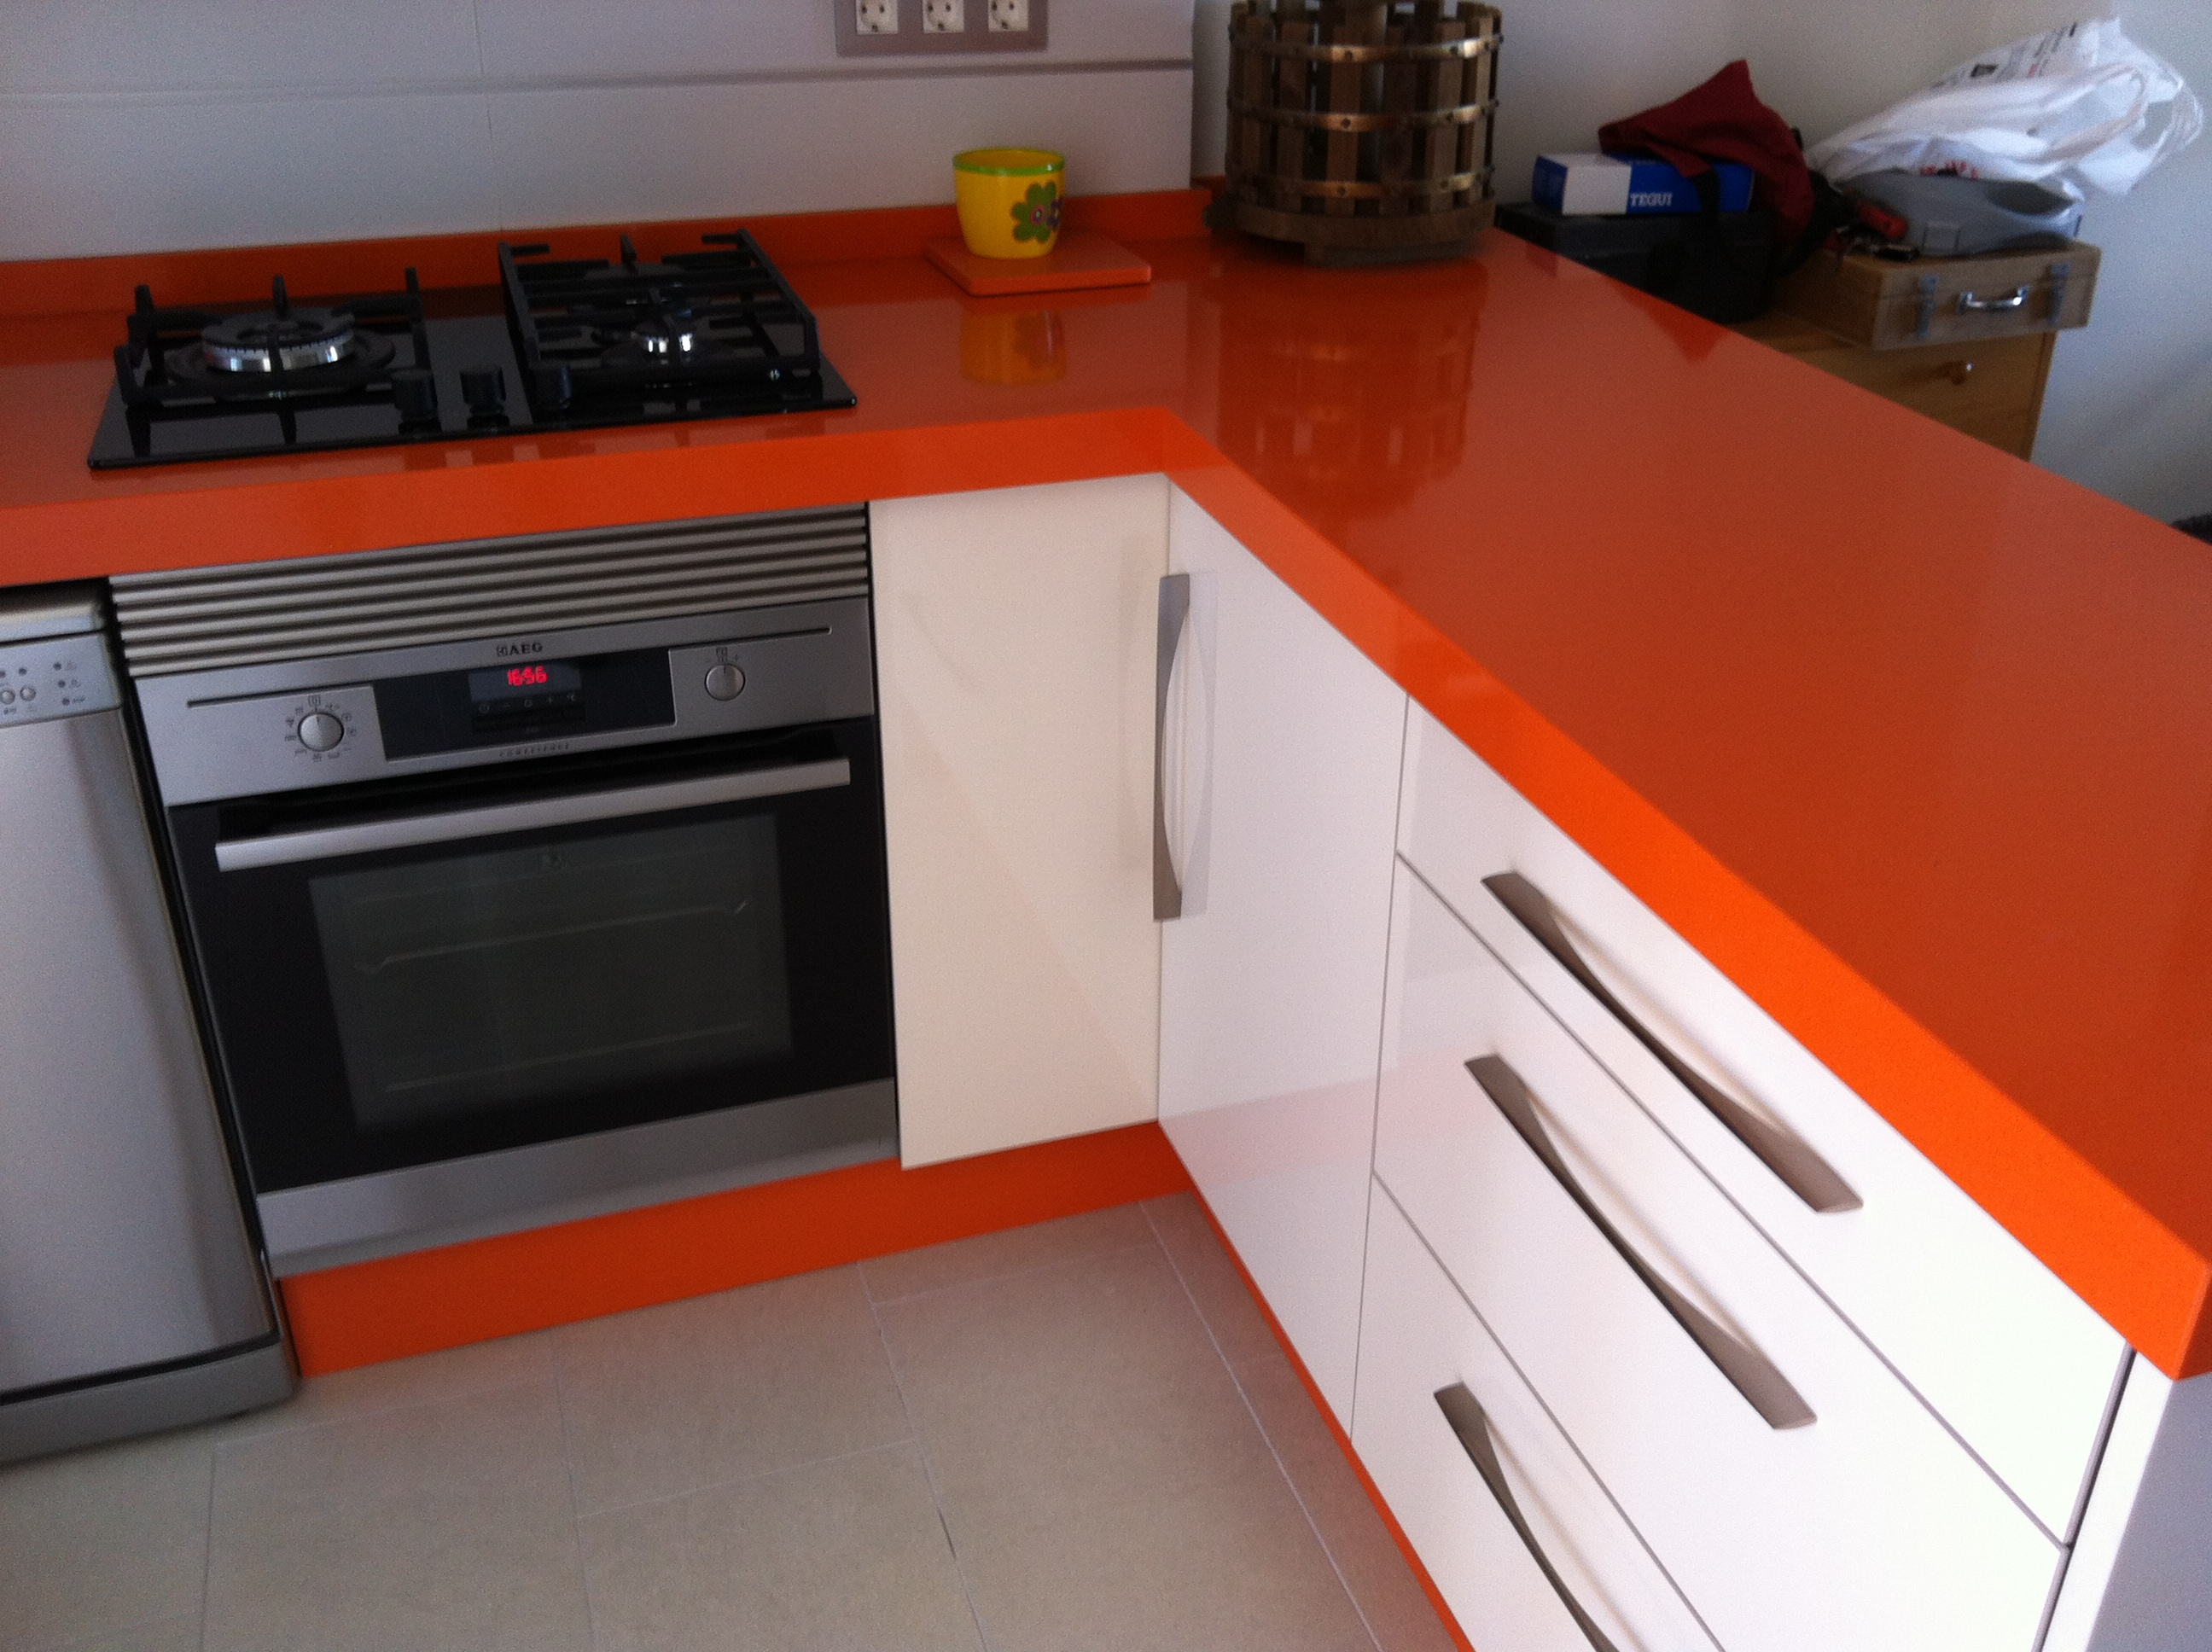 M rmolista alicante silestone orange cool kitchen - Mesas de cocina de silestone ...